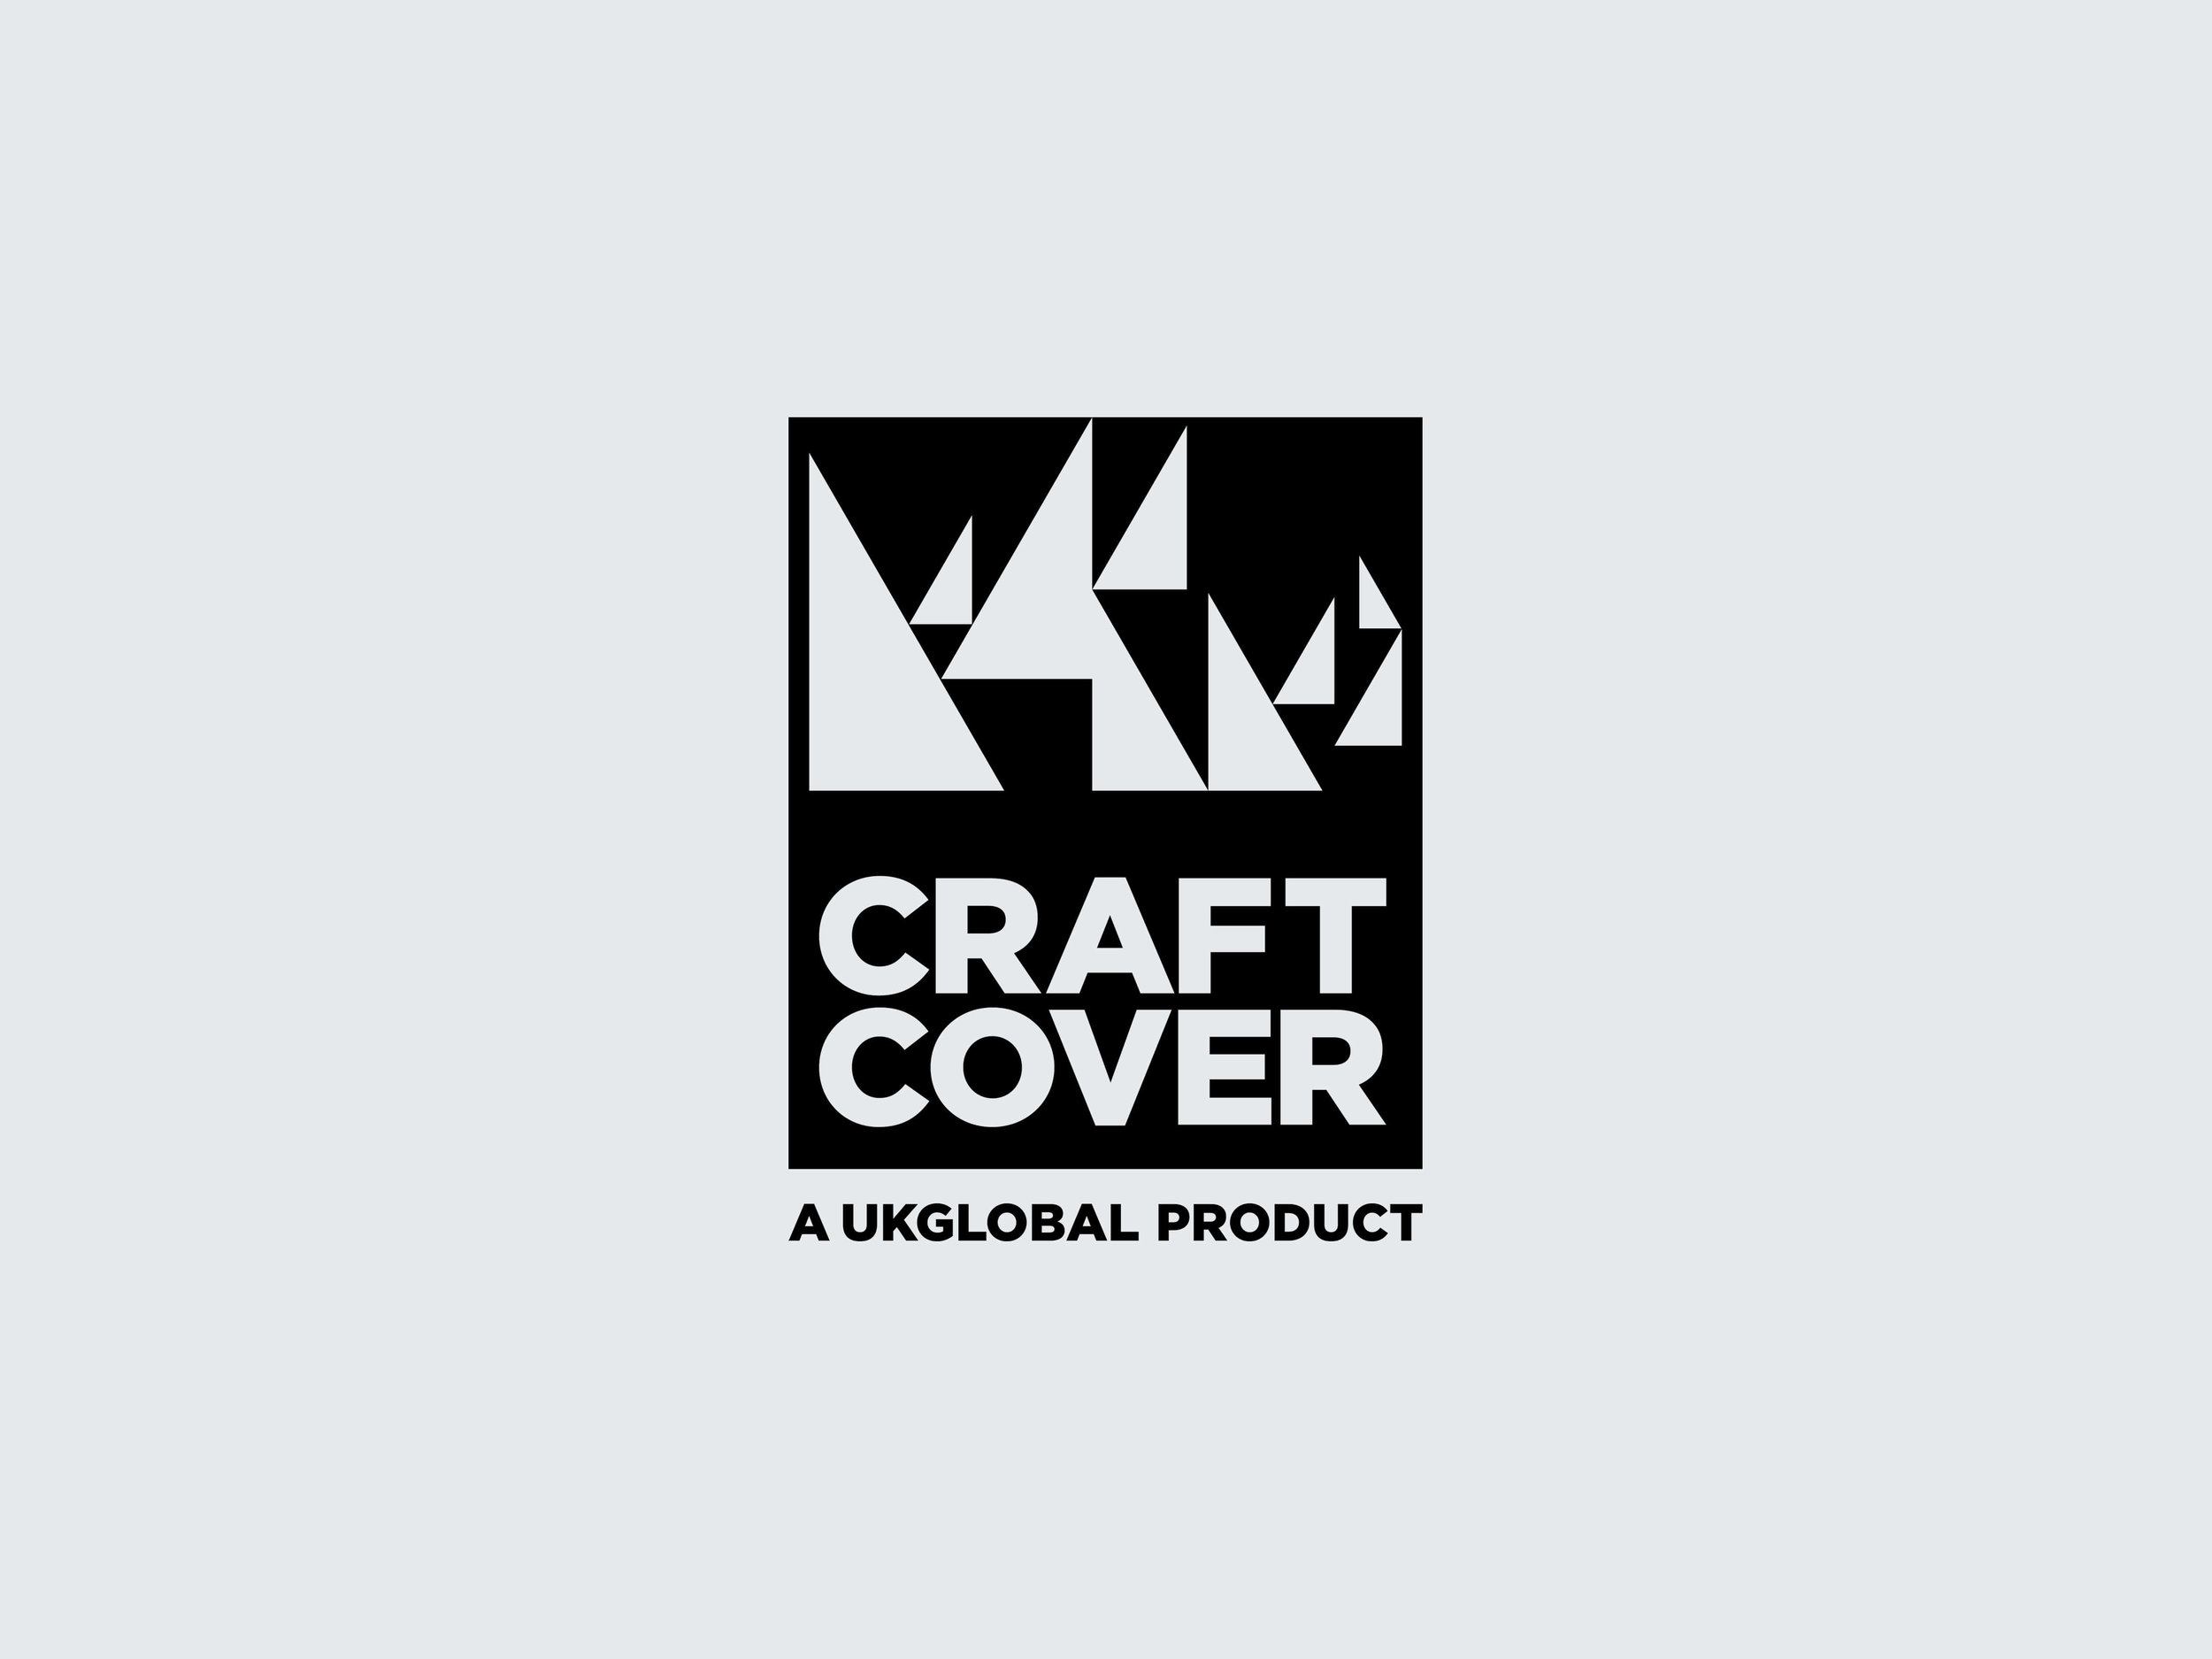 Craft-Cover-logo.jpg